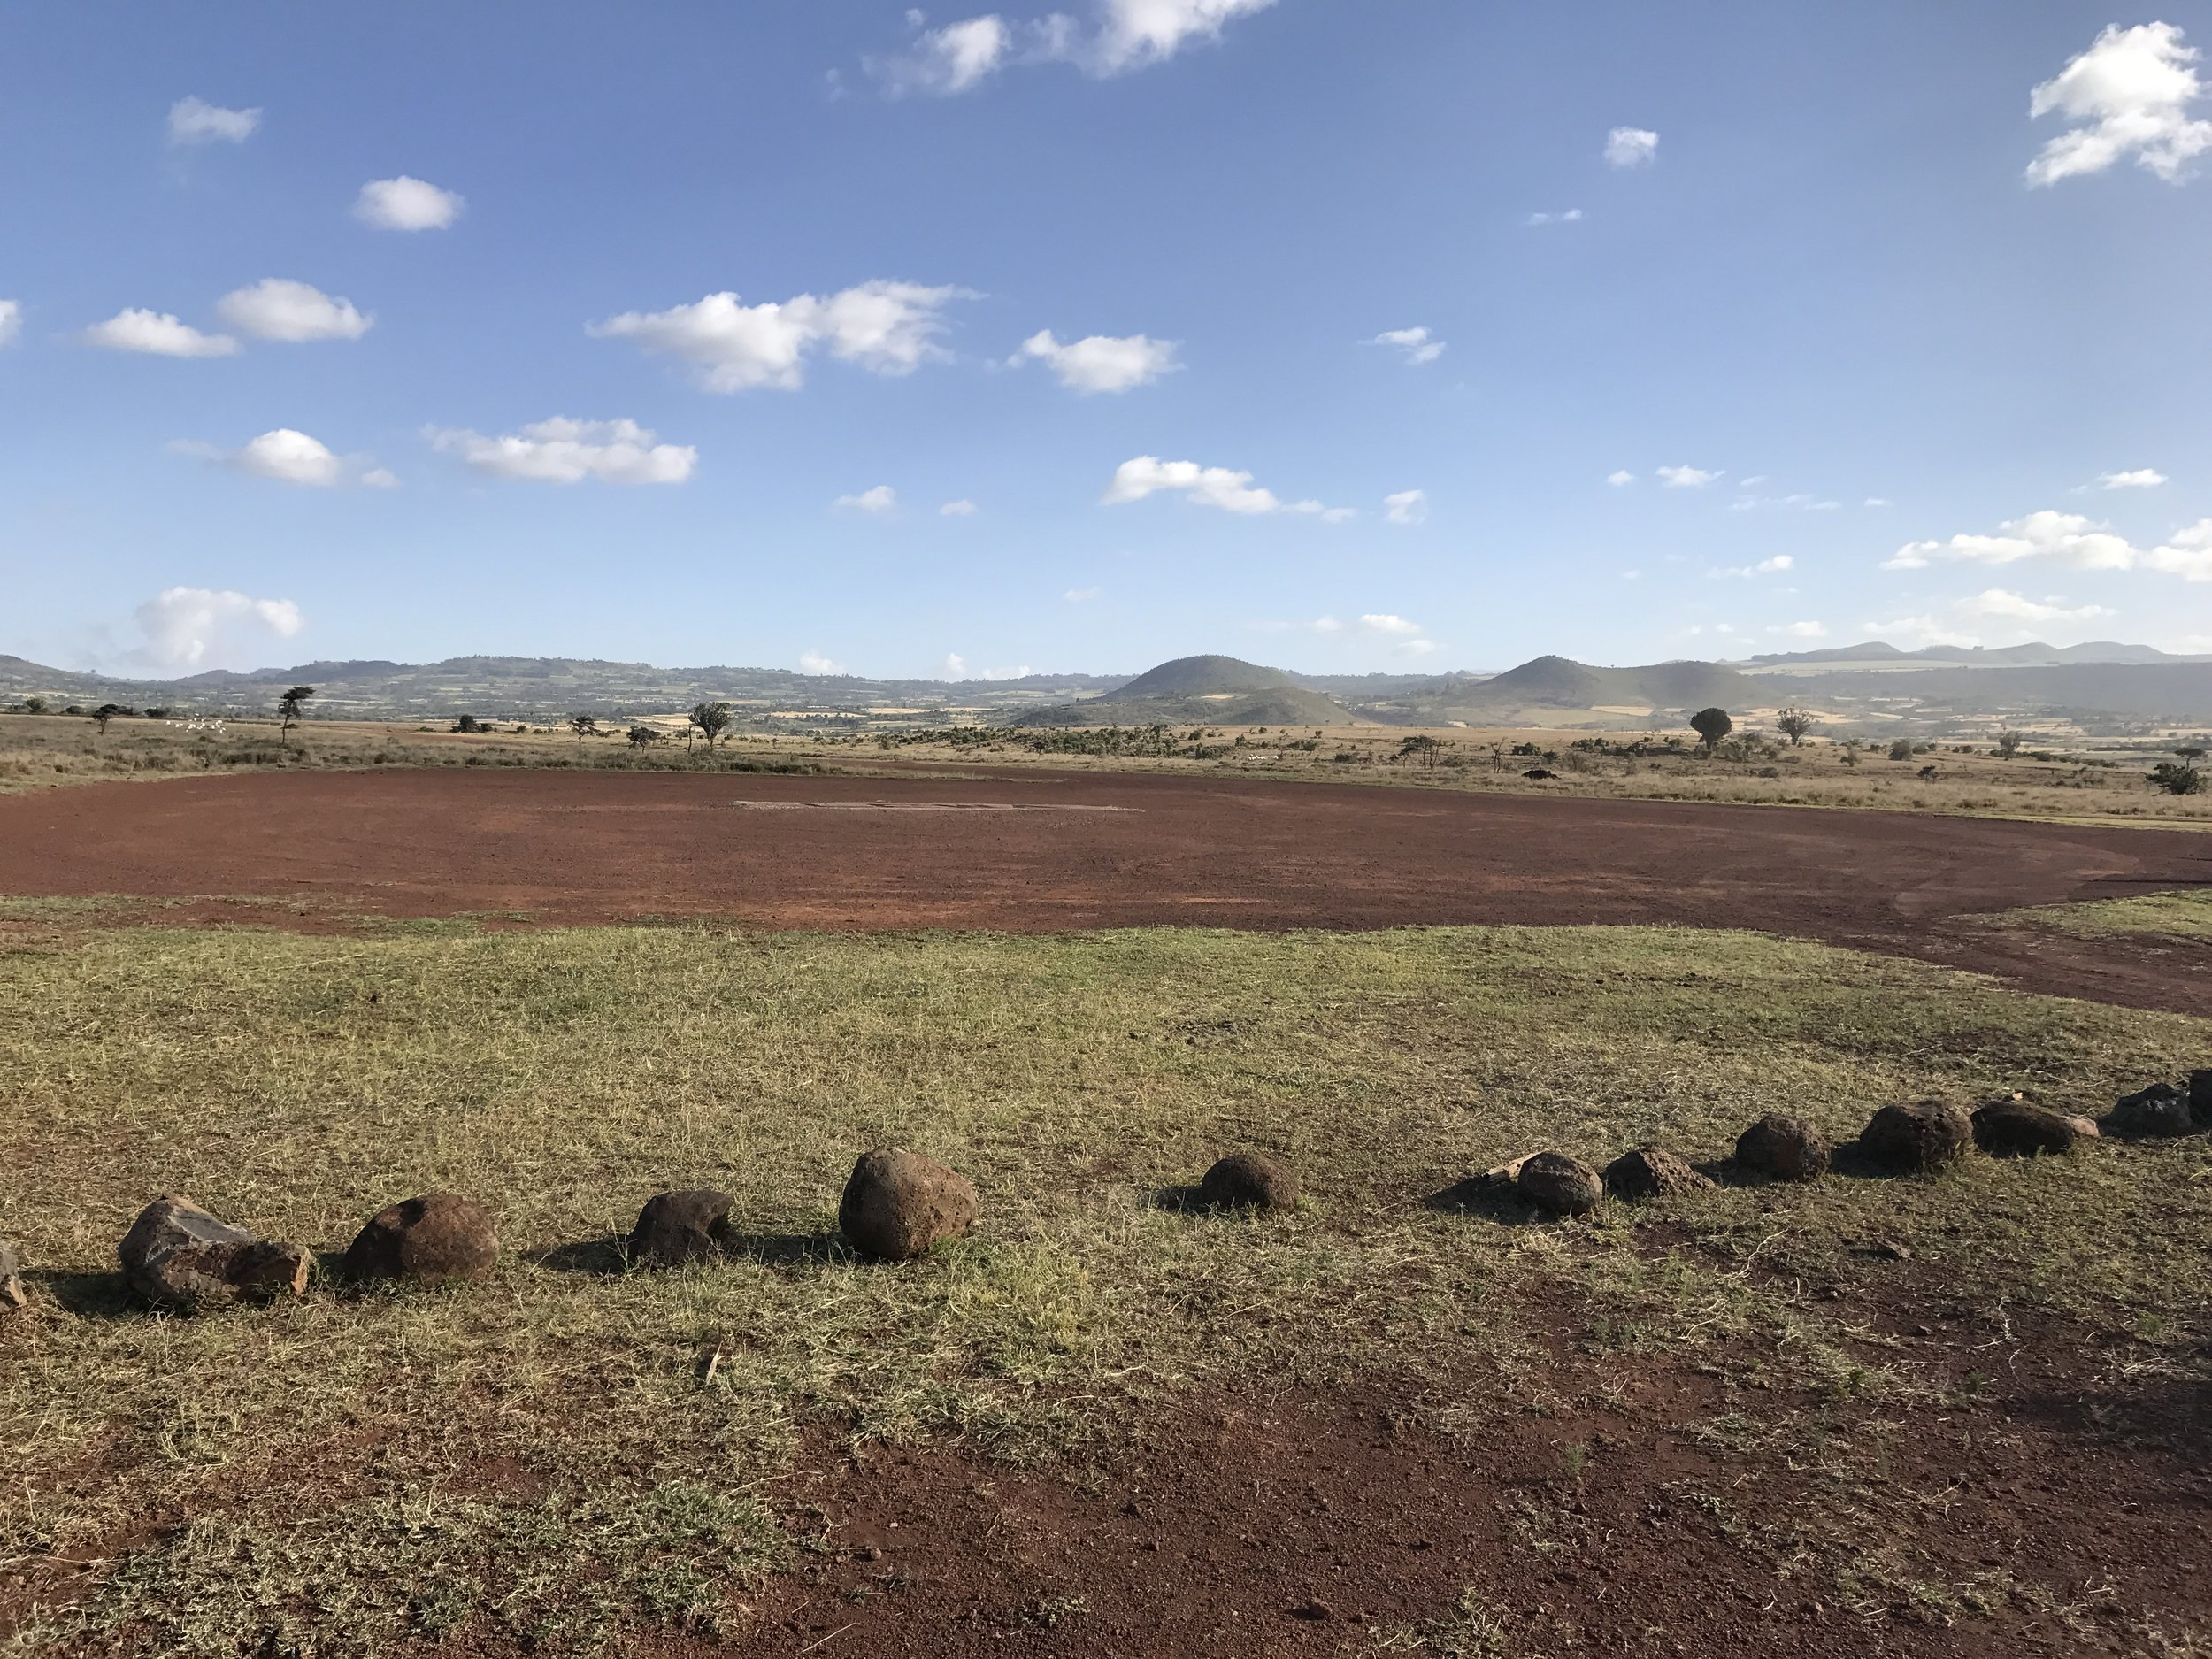 The scene stepping off of the plan at Lewa Downs.